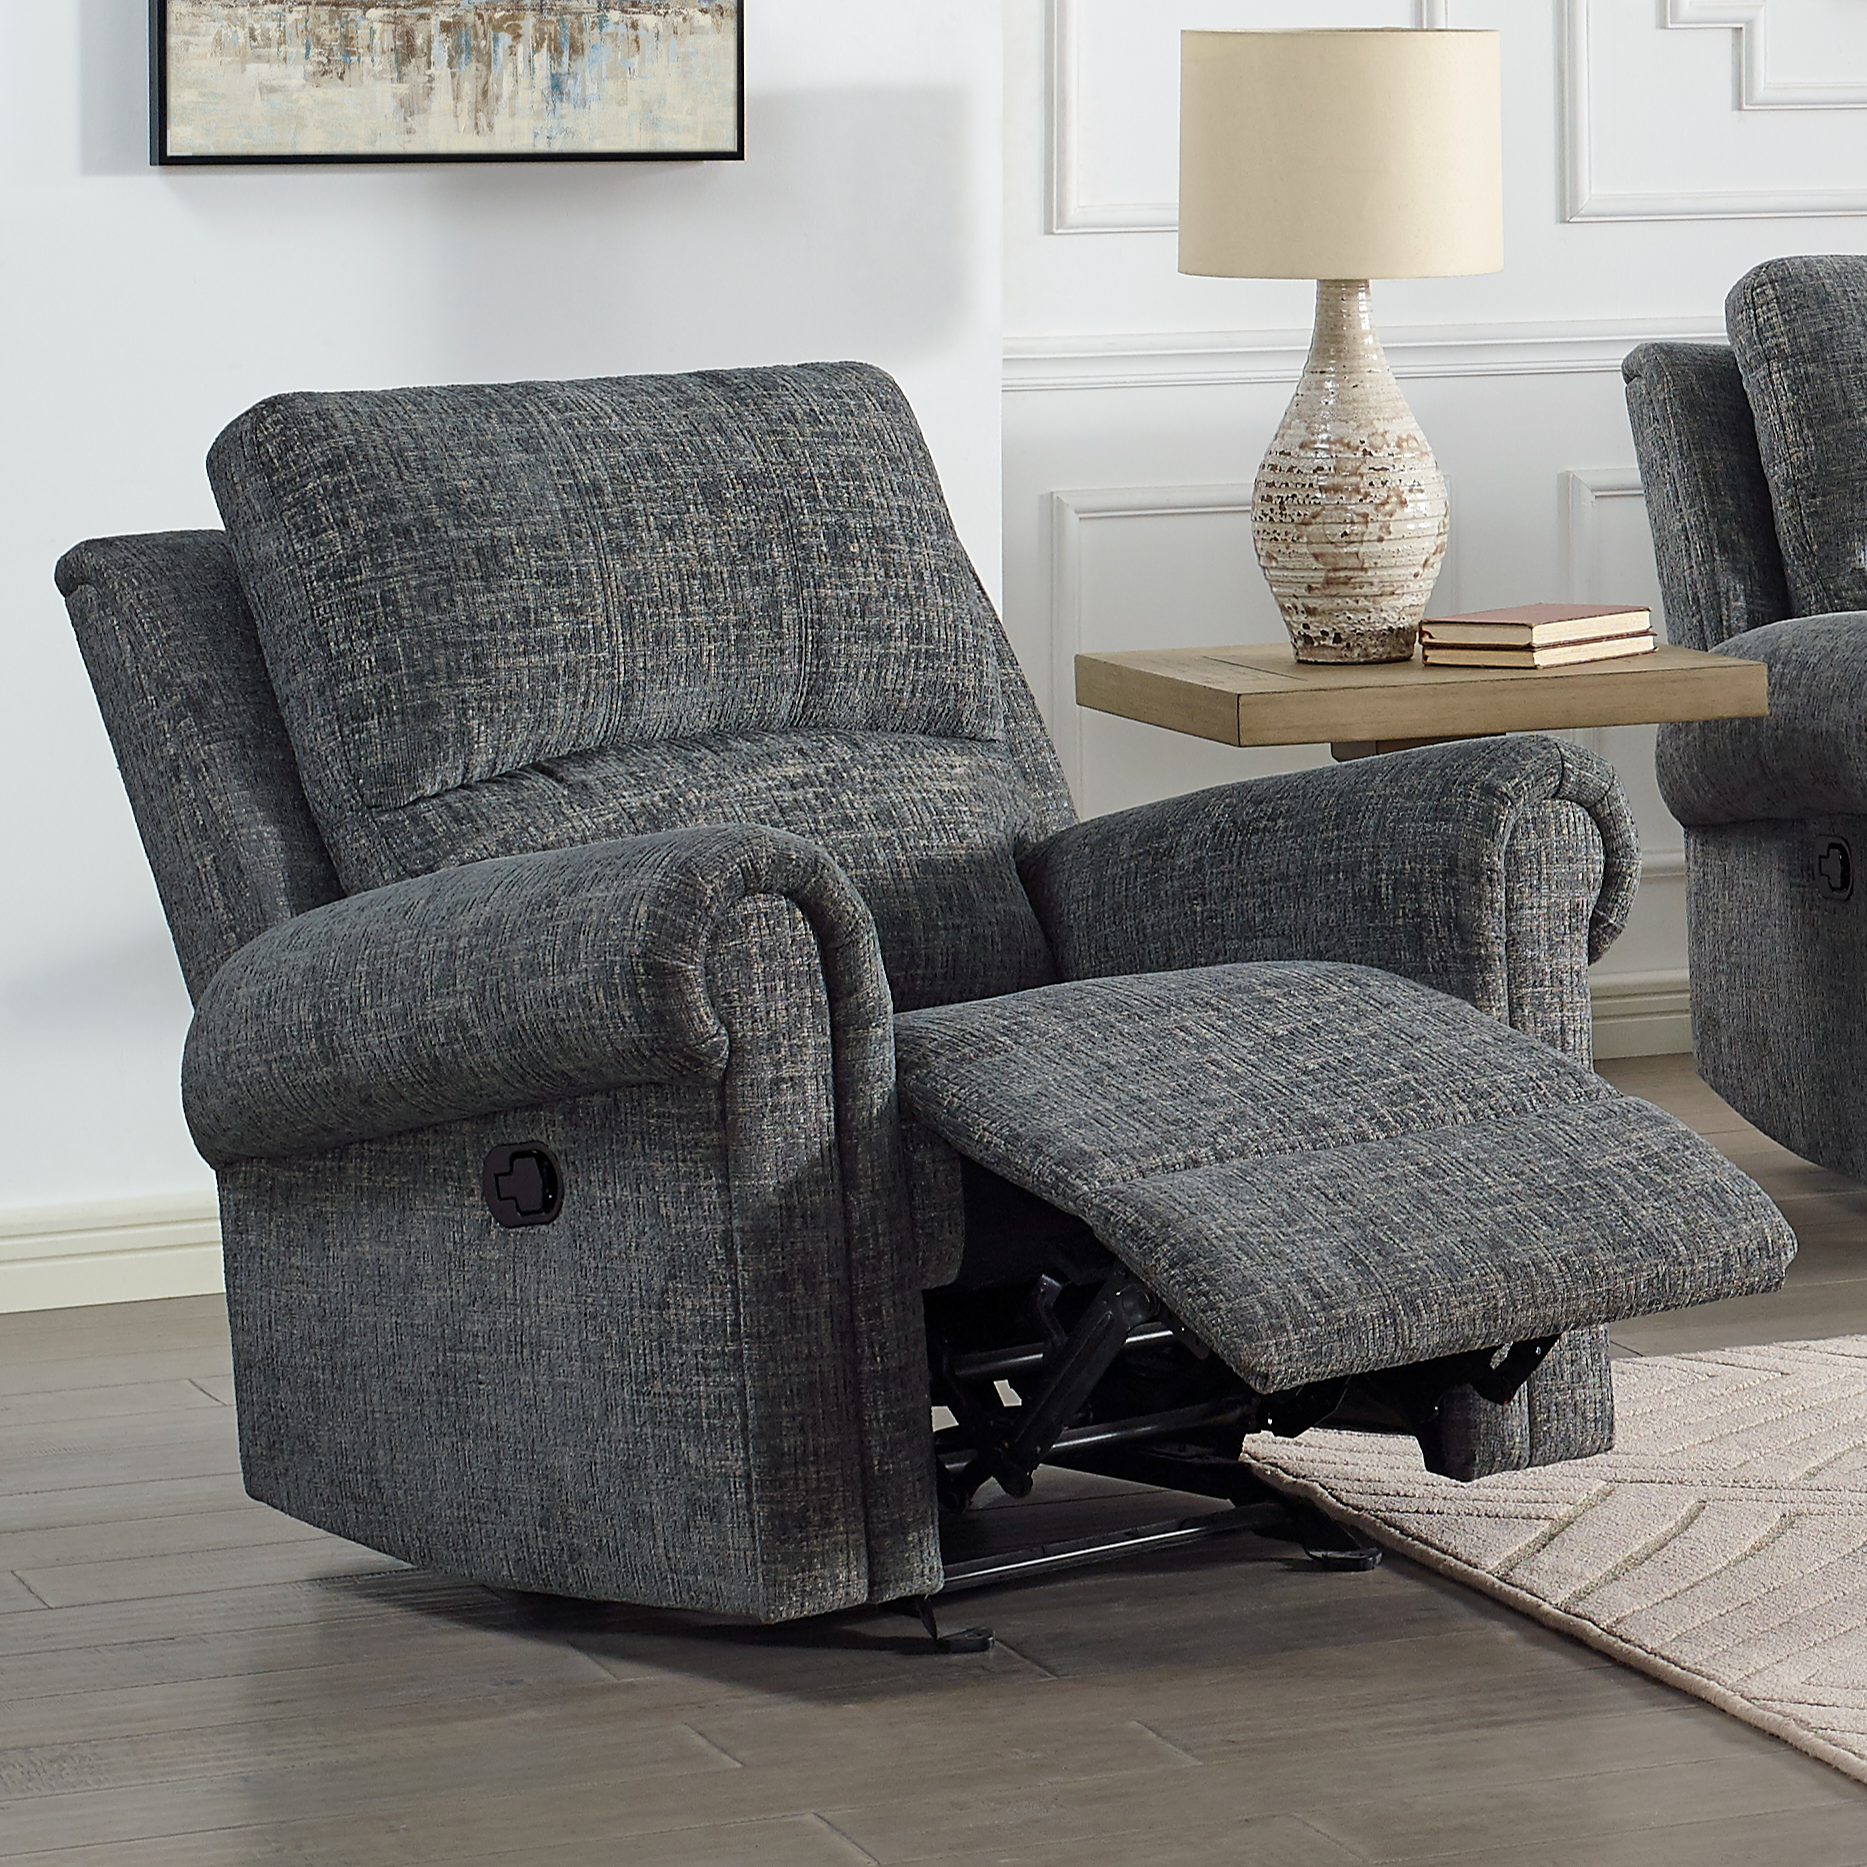 Connor Power Glider Recliner by New Classic at Rooms for Less